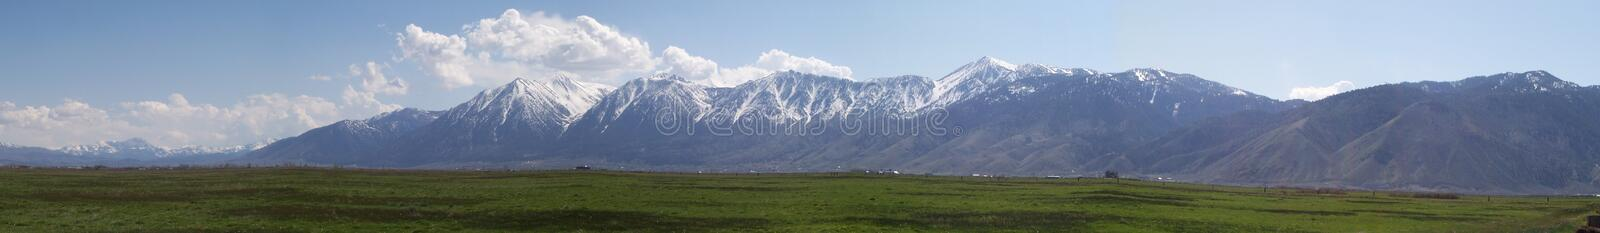 Sierra Nevada Mountains in Carson Valley stock photo